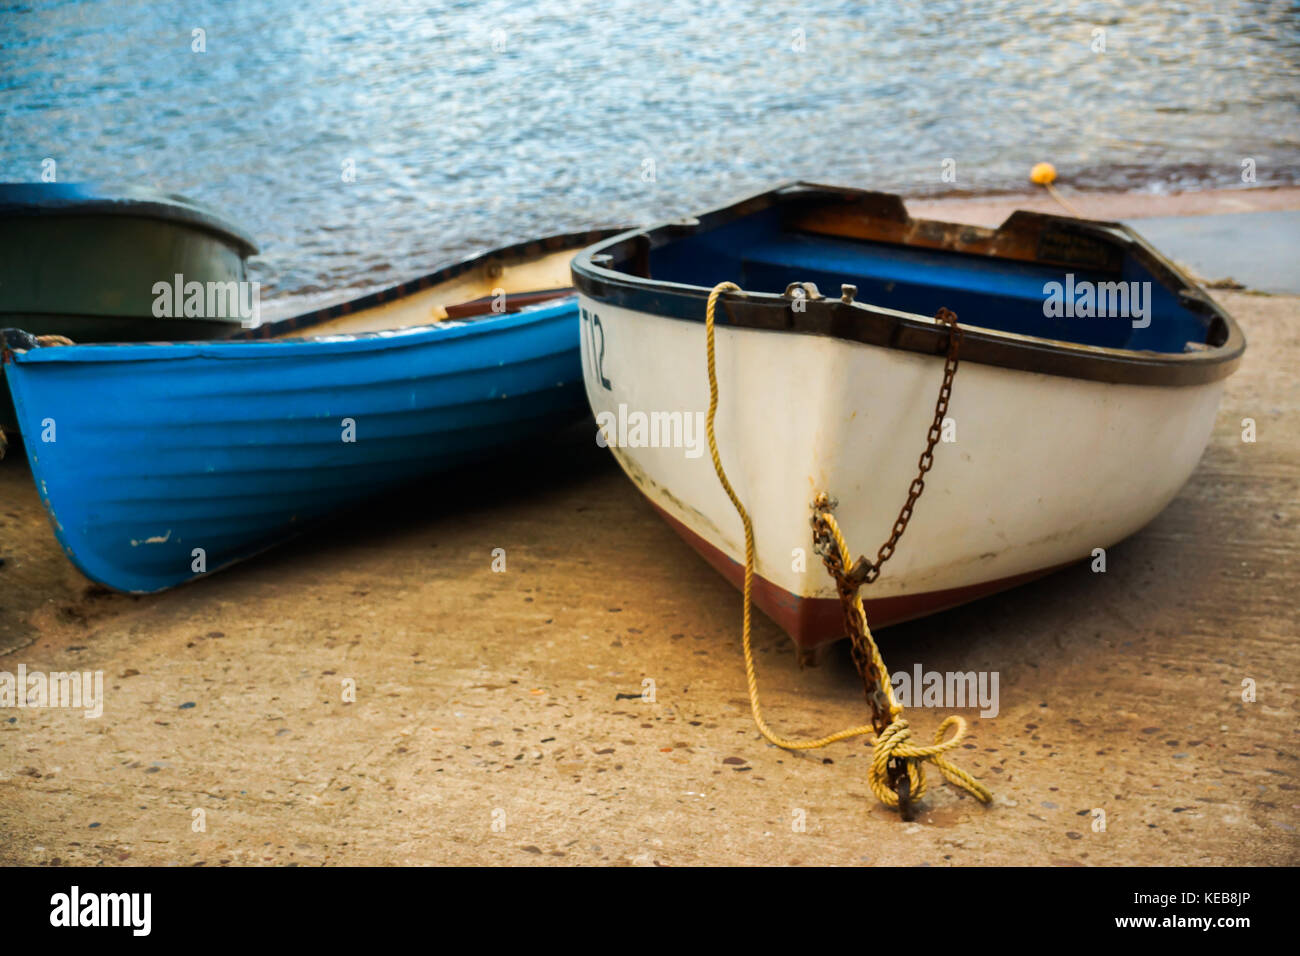 Row boats by the sea in Dawlish, UK - Stock Image